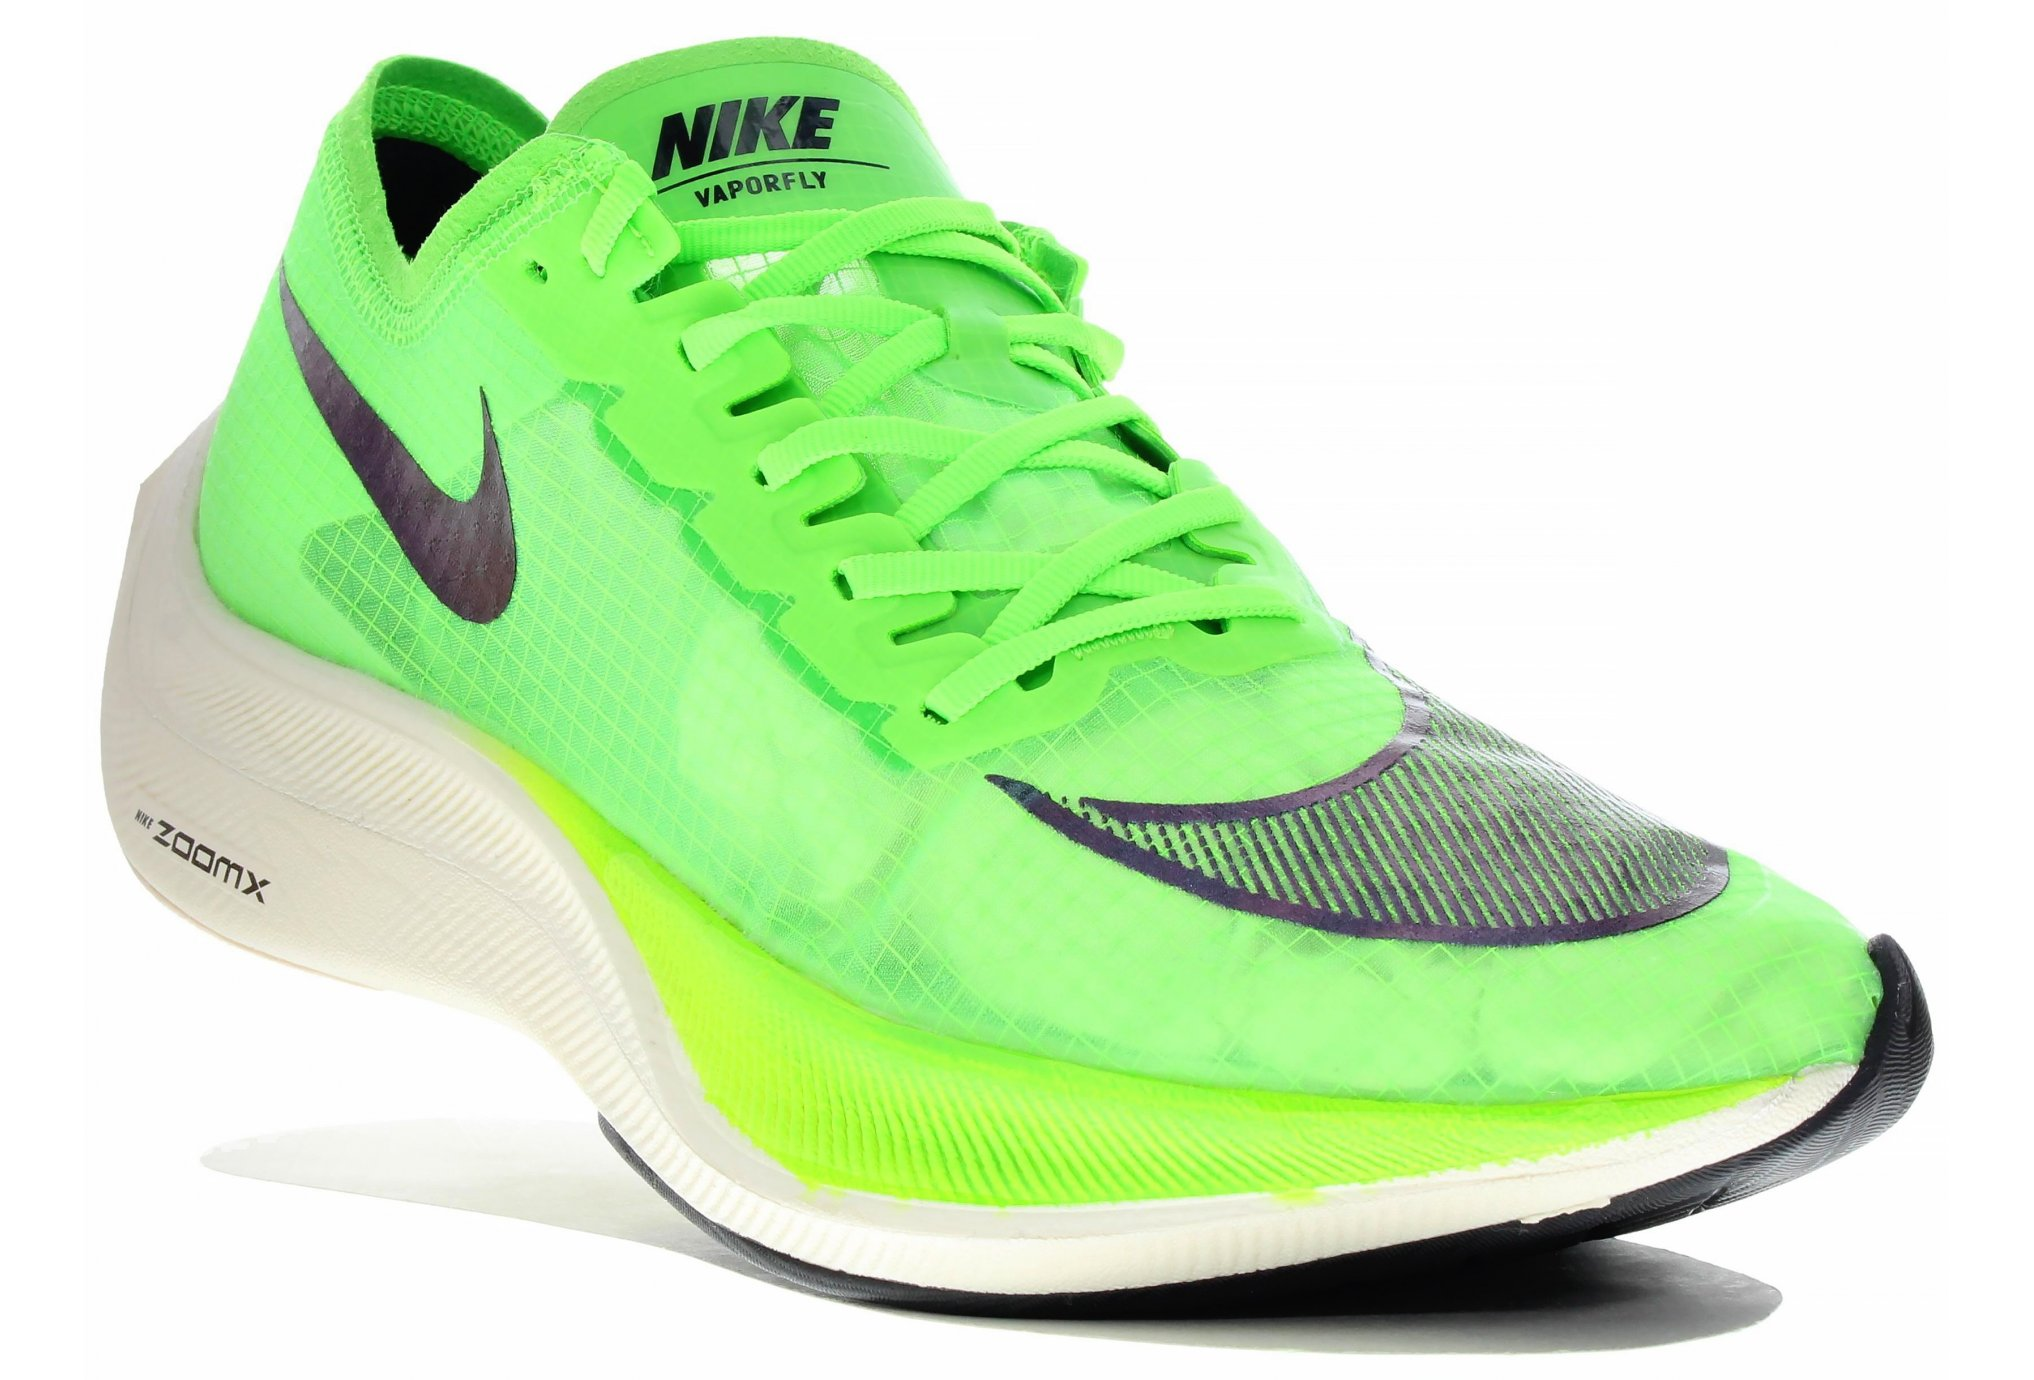 Nike ZoomX Vaporfly Next% Chaussures homme